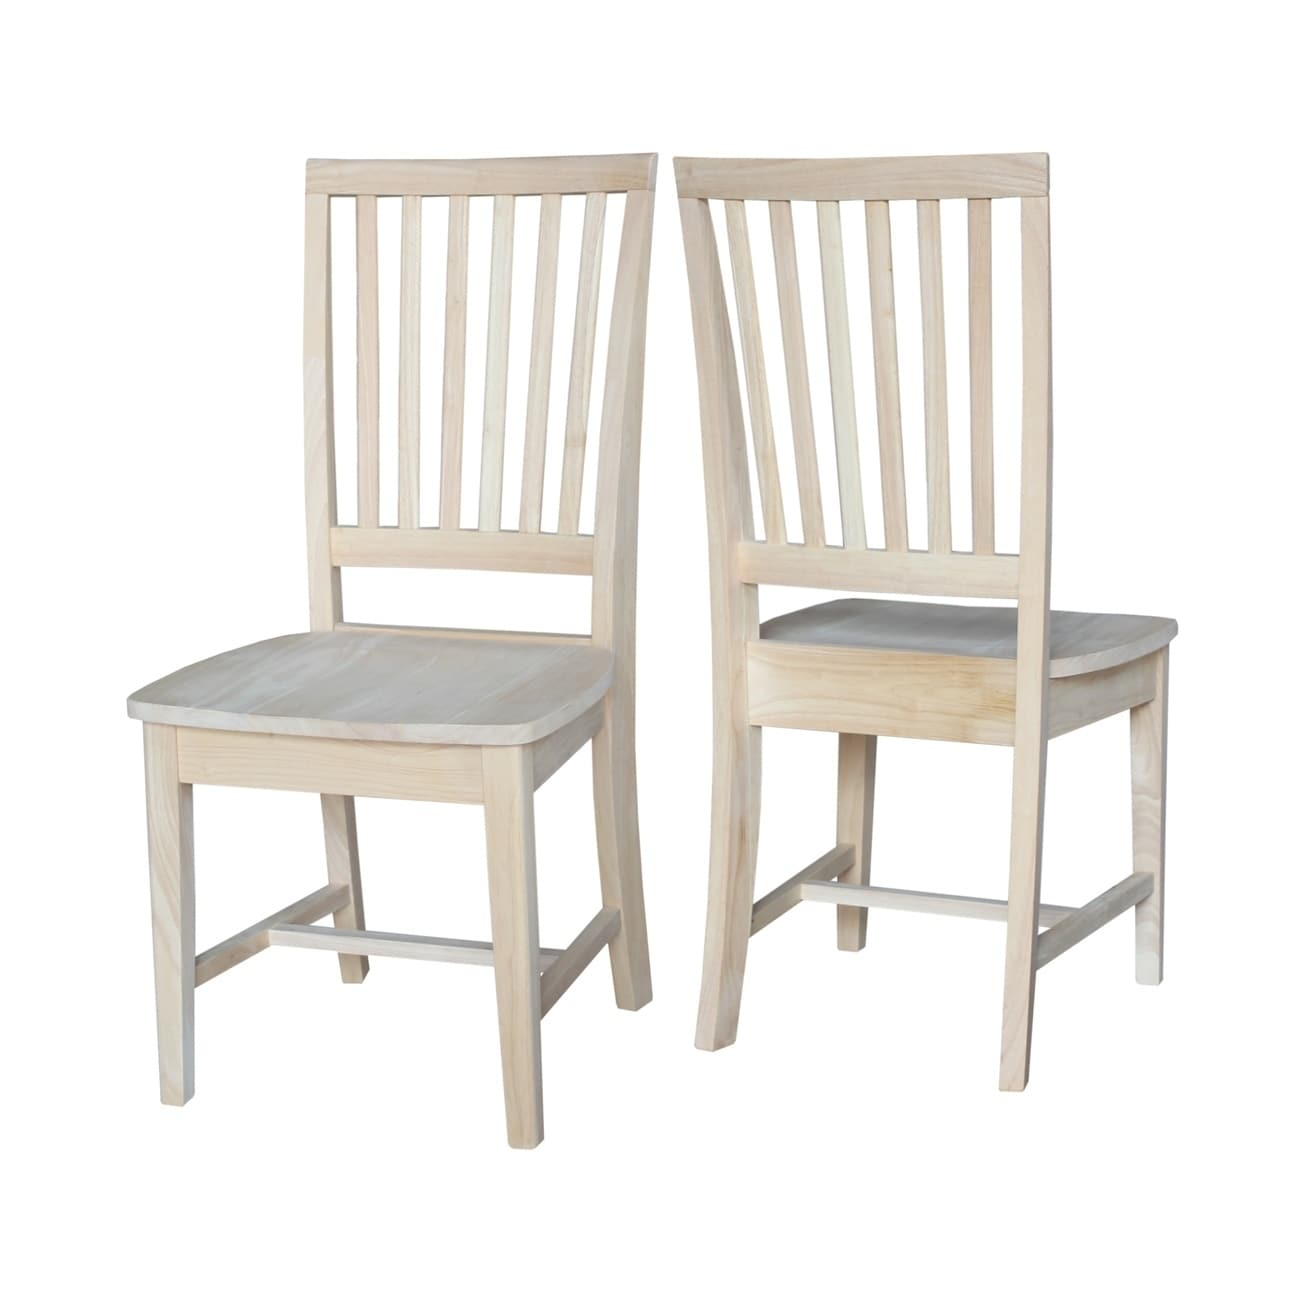 The Gray Barn Moonshine Unfinished Mission Dining Chair Set Of 2 Free Shipping On Orders Over 45 9363325